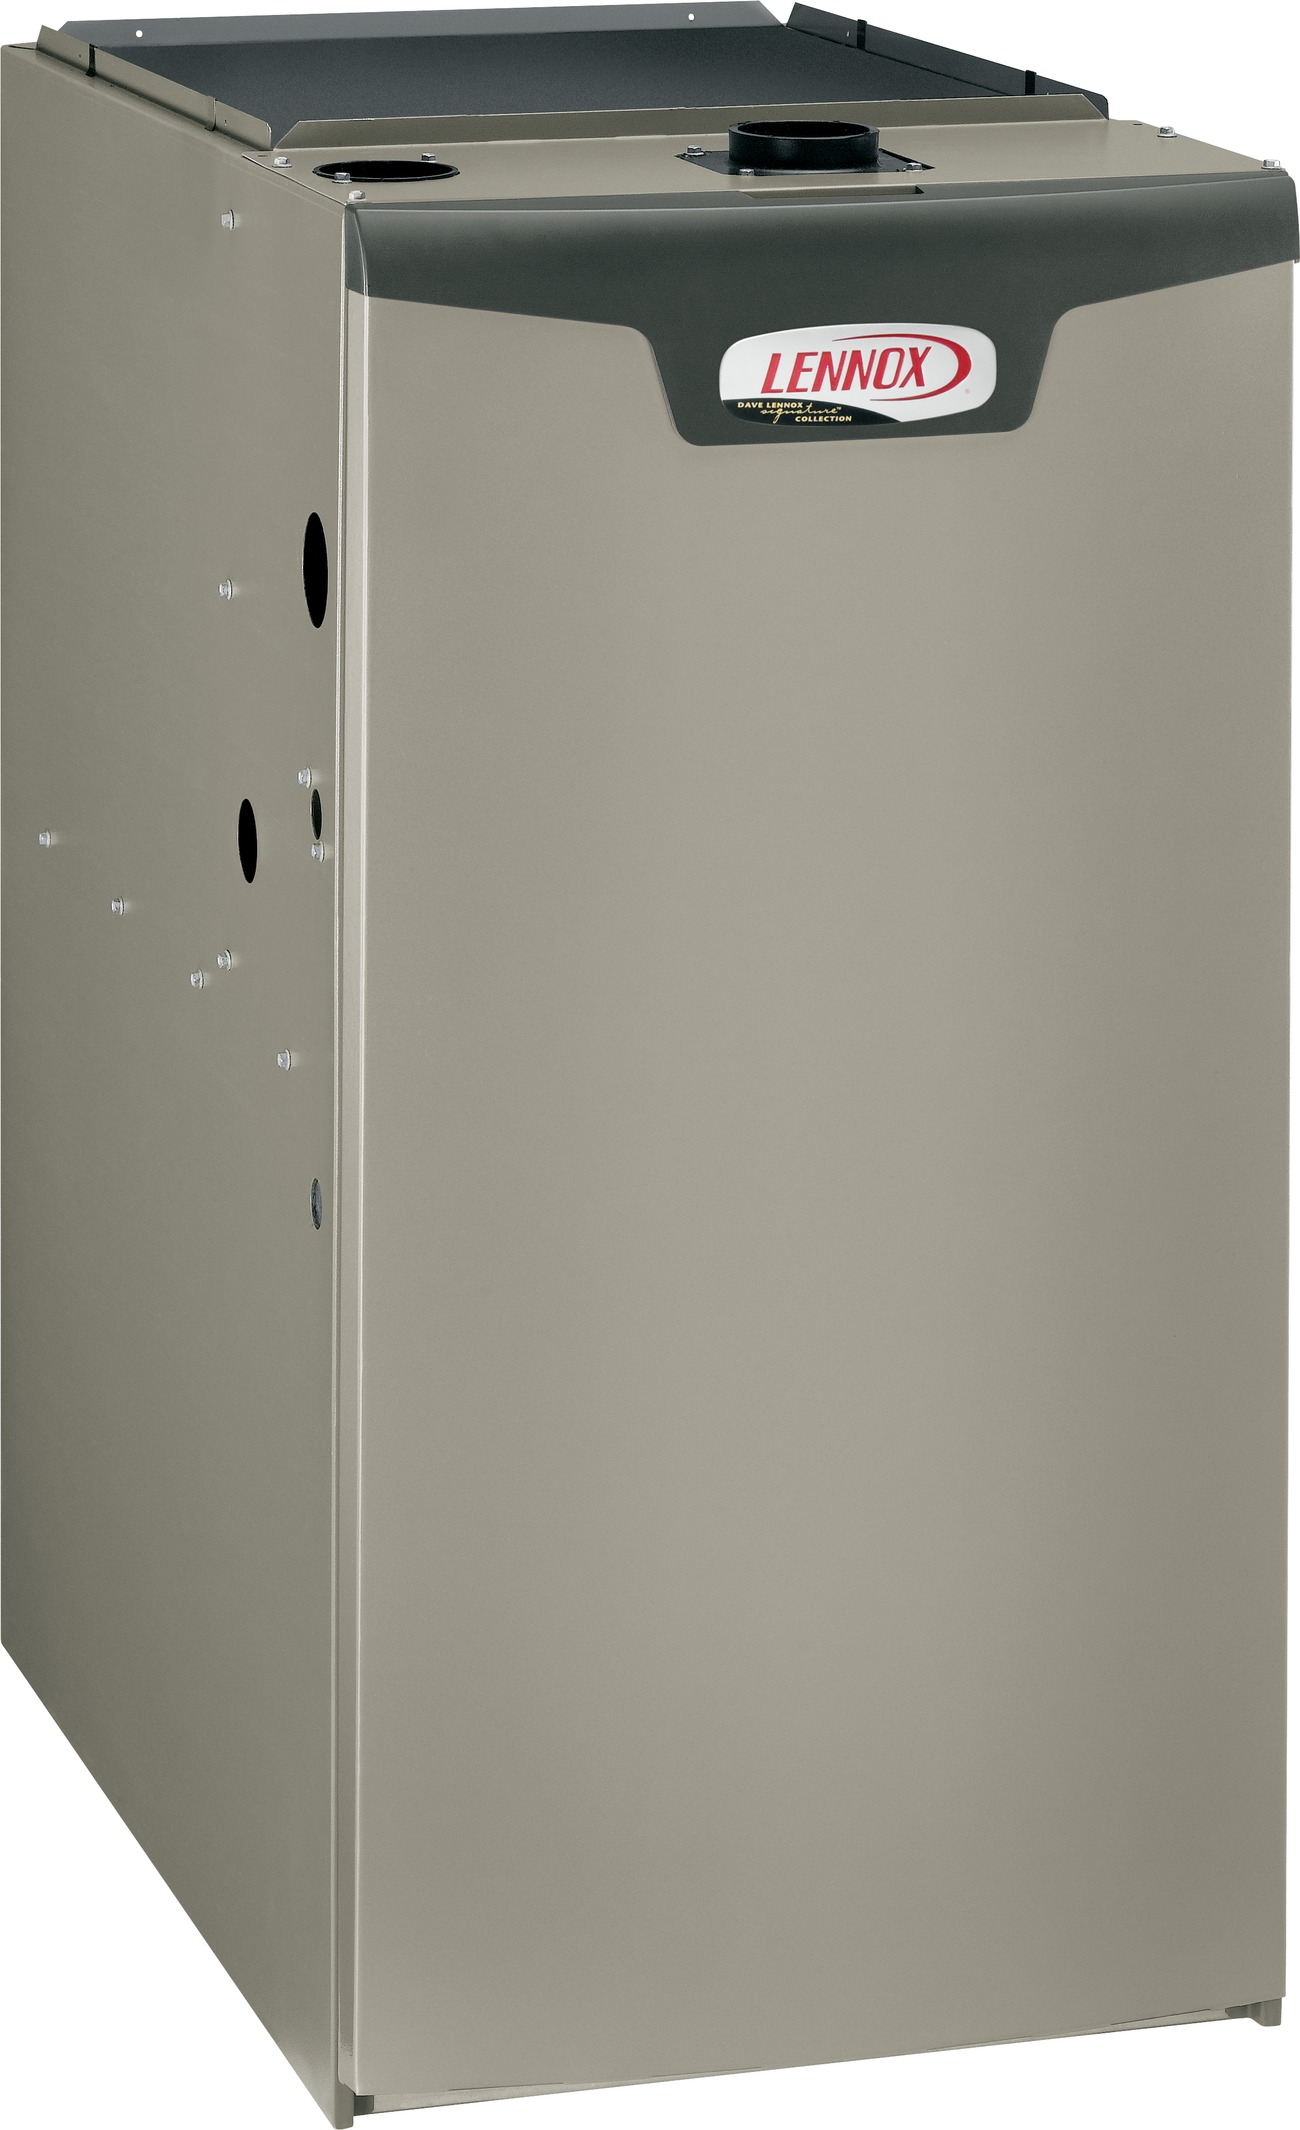 electric furnace lennox fill in the blank anatomy diagrams dan 39s top notch heating and cooling vancouver wa like us